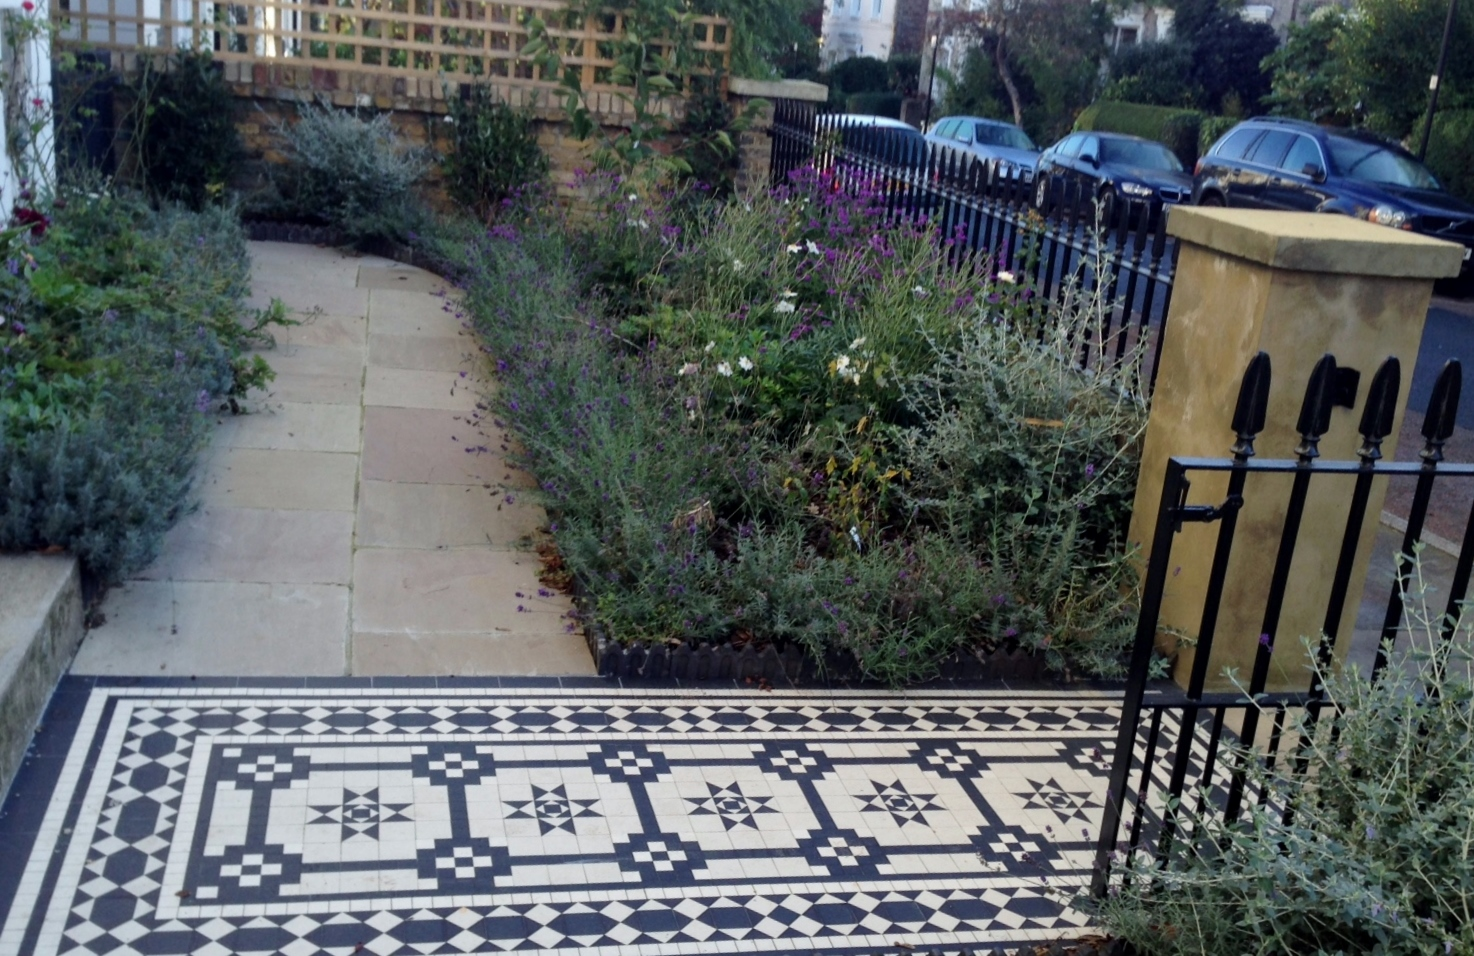 Islington Victorian mosaic tile path York stone sandstone paving wrought iron rails and gate London (17)